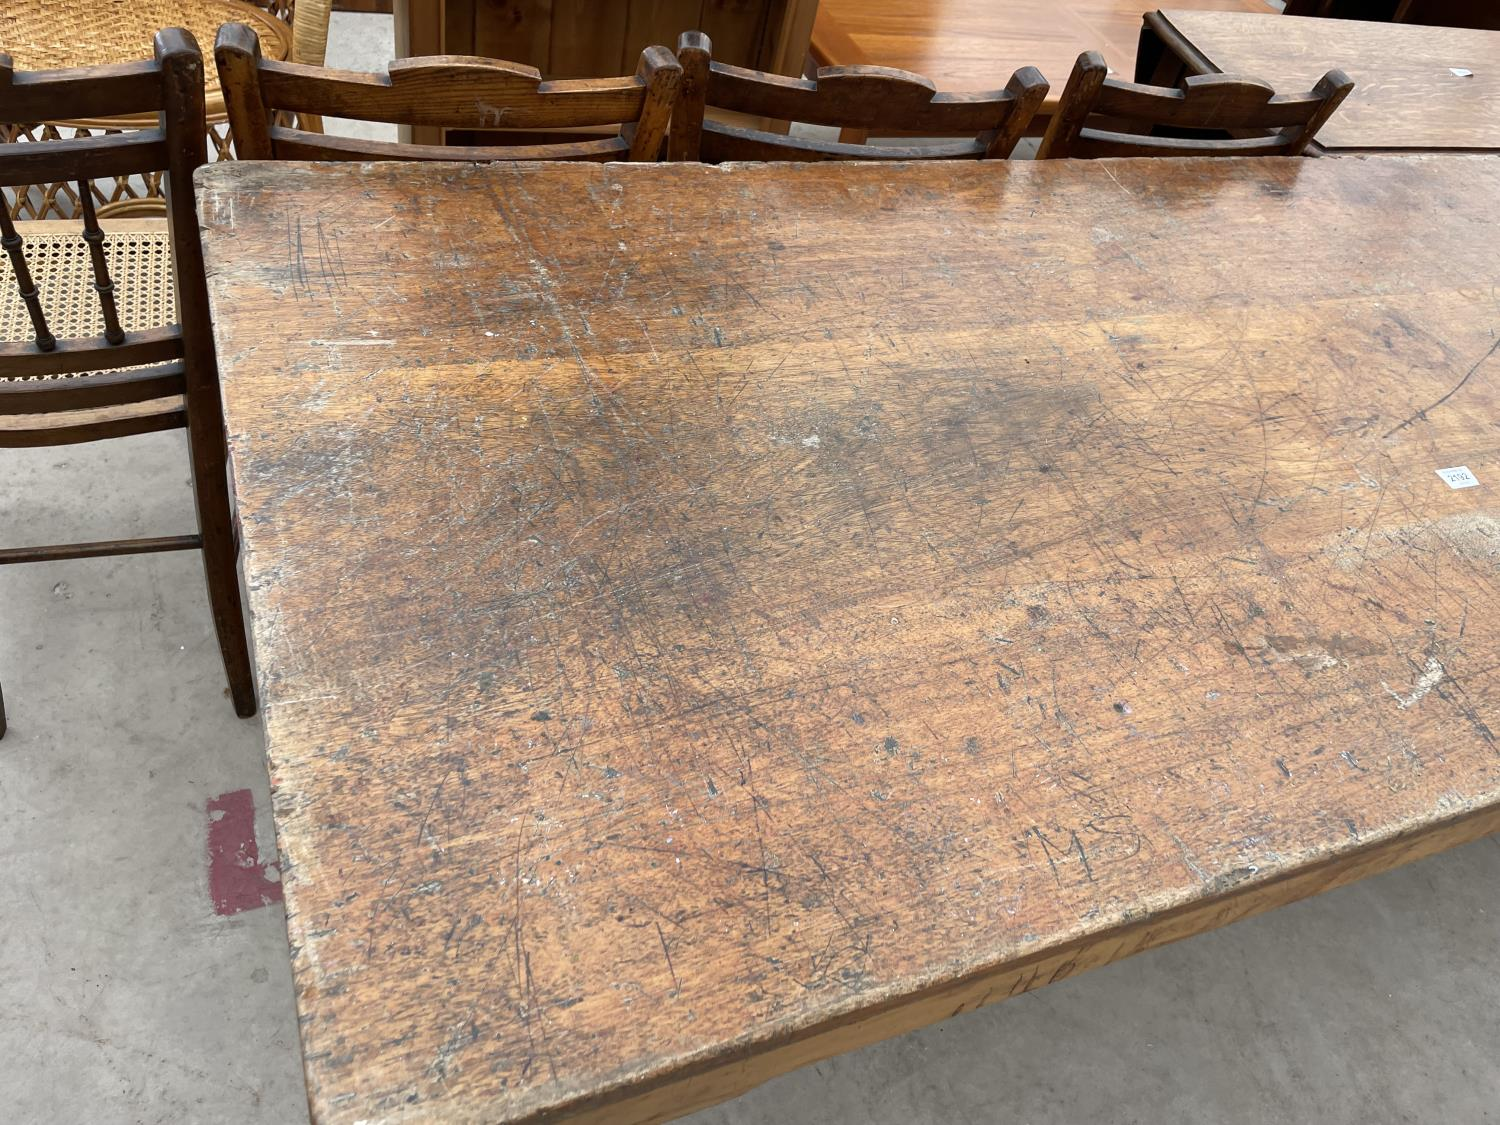 """A MID 20TH CENTURY SCHOOL/FUNCTION TABLE, 72X30"""", STAMPED J.R. TAYLOR, WIGAN (L.C.C.B.P.) - Image 2 of 5"""